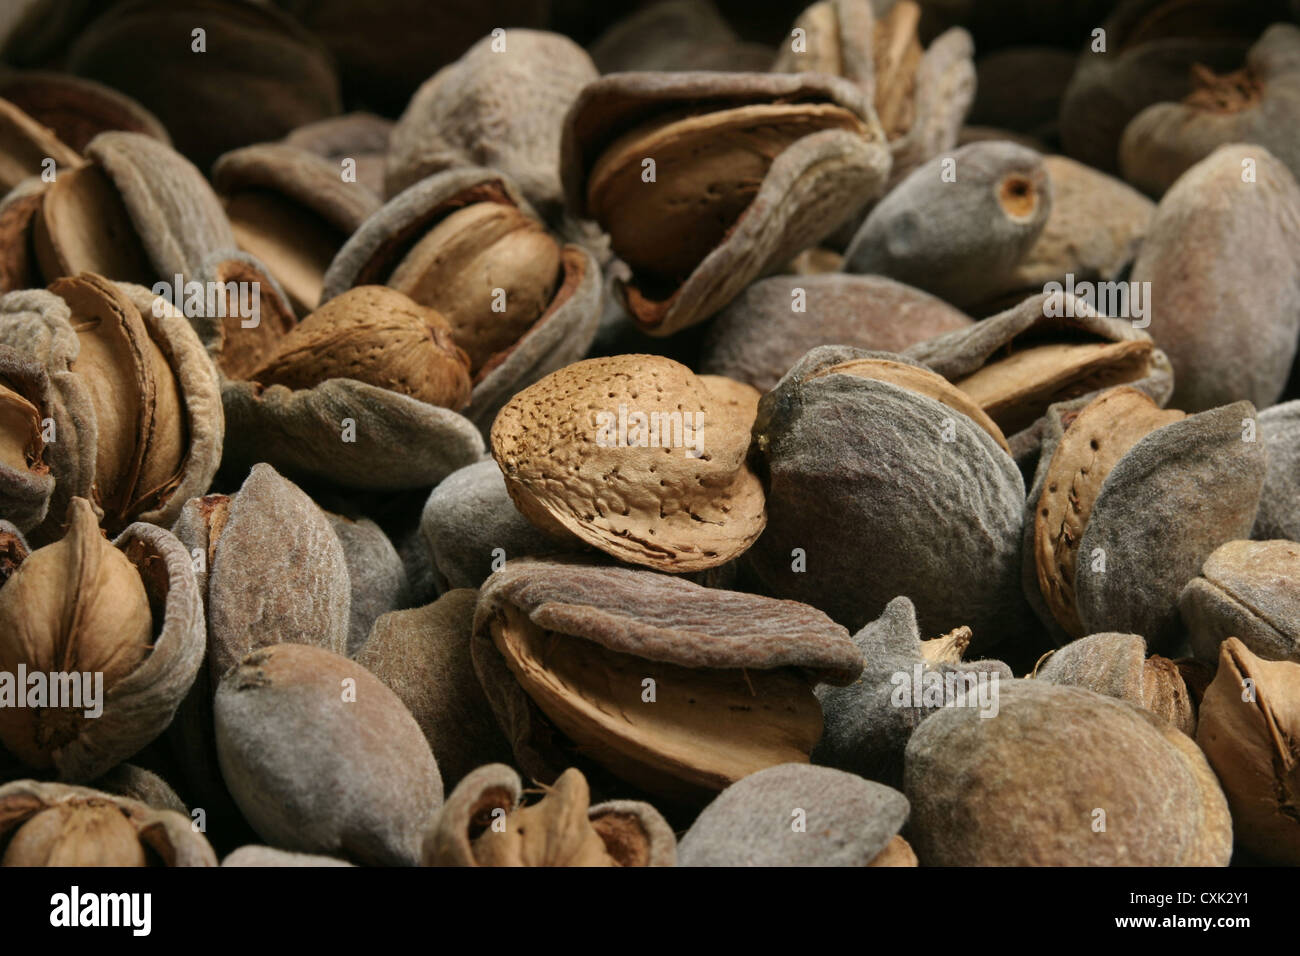 Picture: Steve Race - A mixed bag of Spanish almonds, often called Común or Common Almonds. - Stock Image